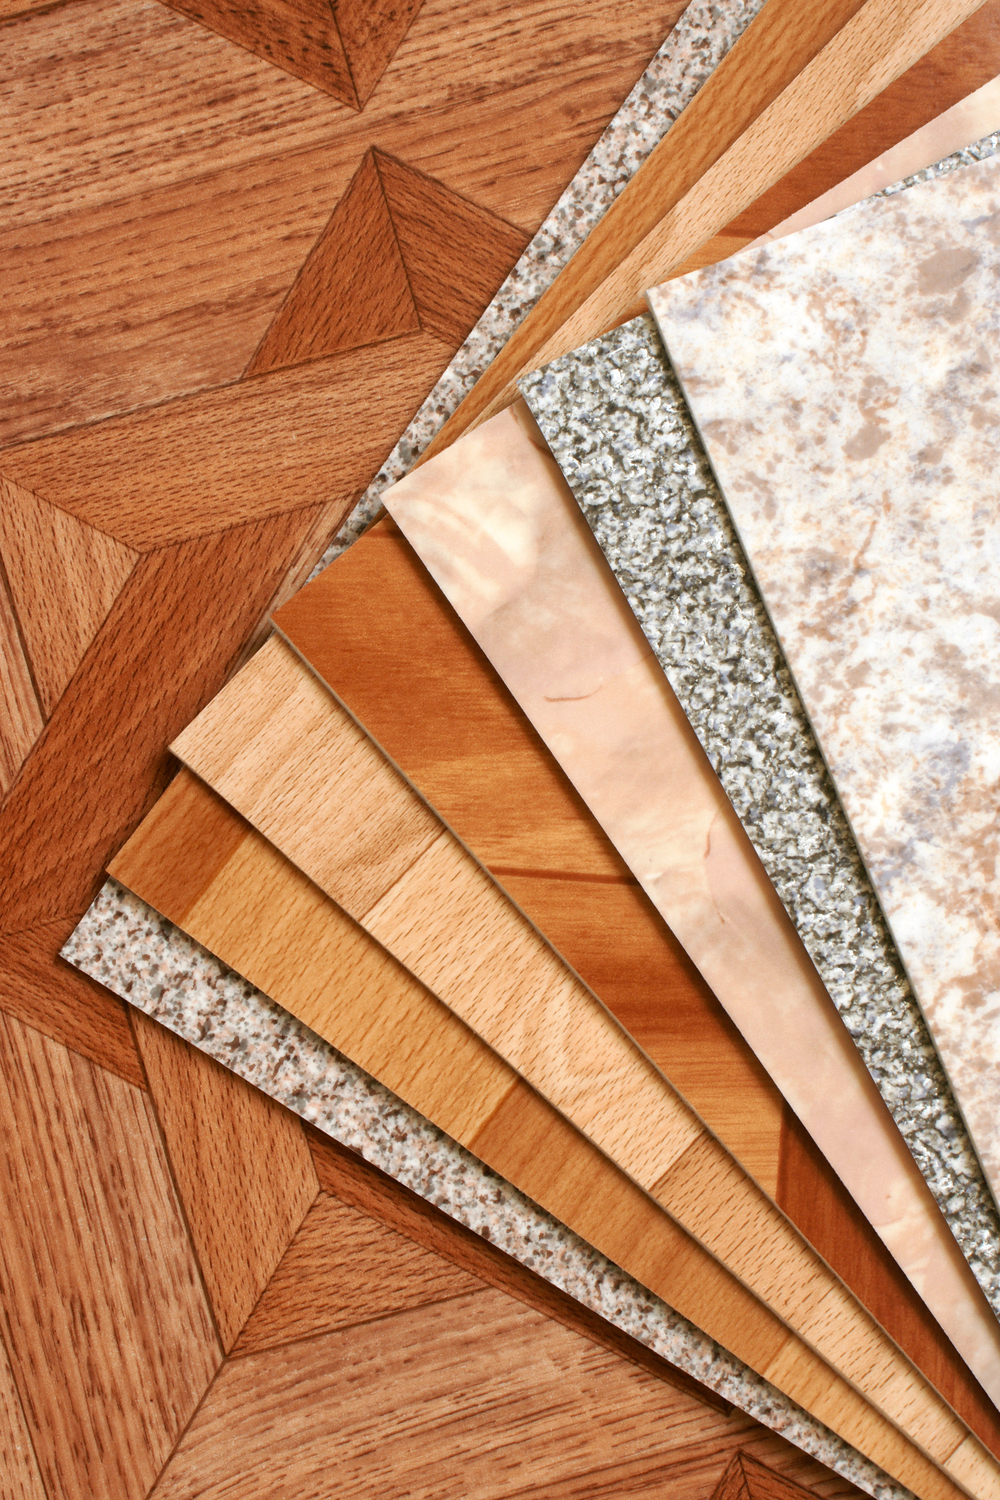 All Decor in Geraldton carry a large range of vinyl flooring.